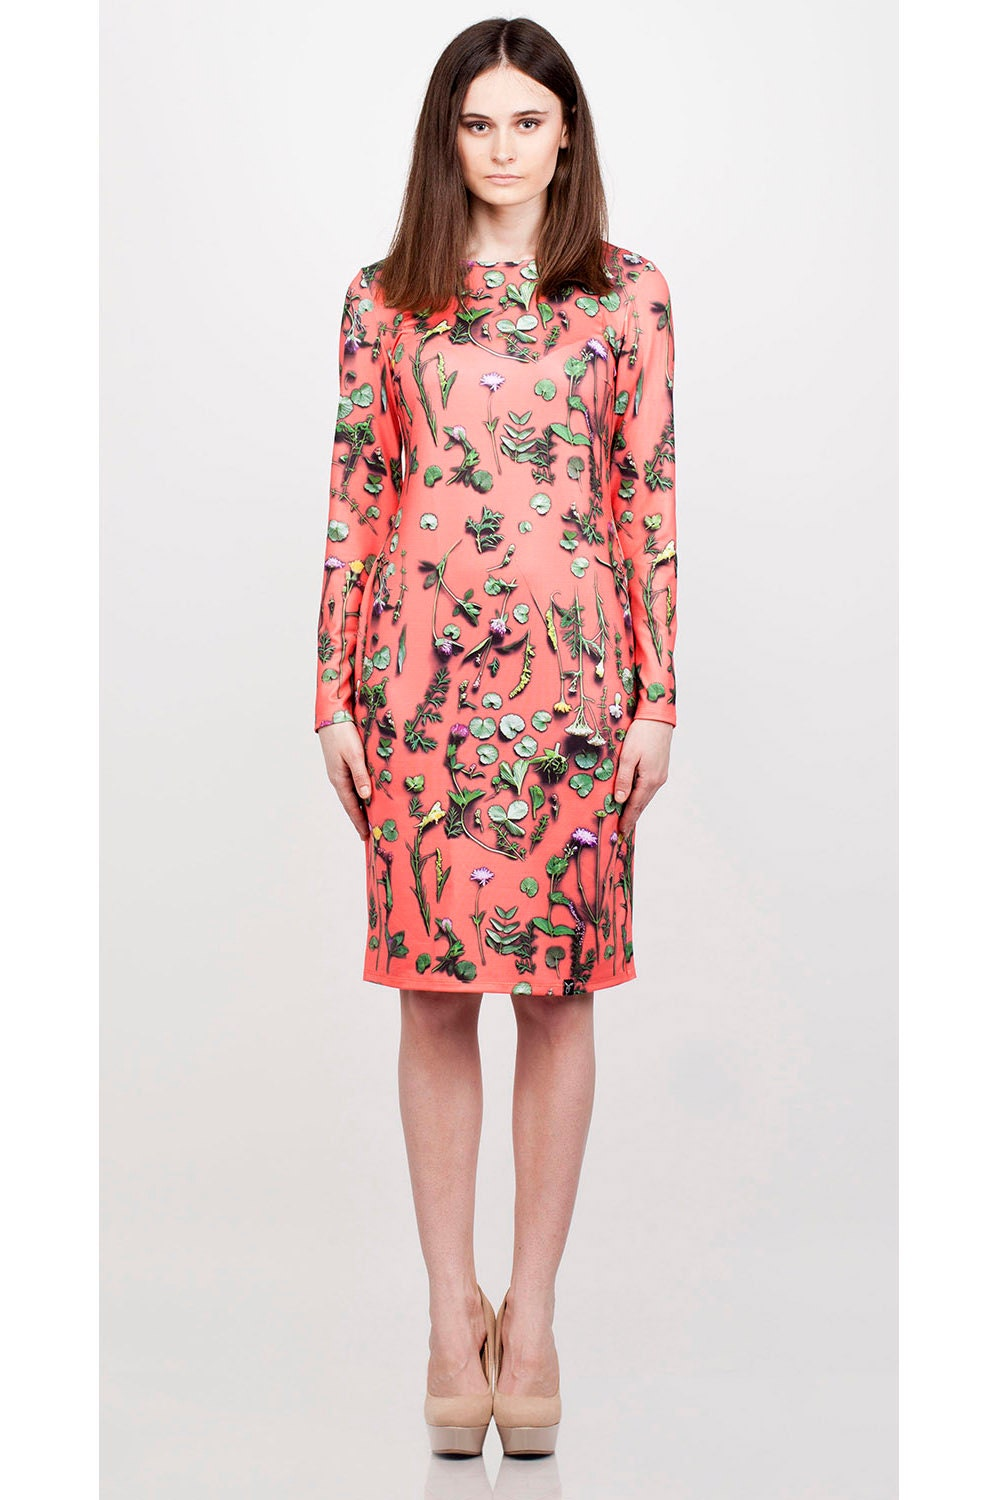 Juicy Orange floral dress - QooQooFashion